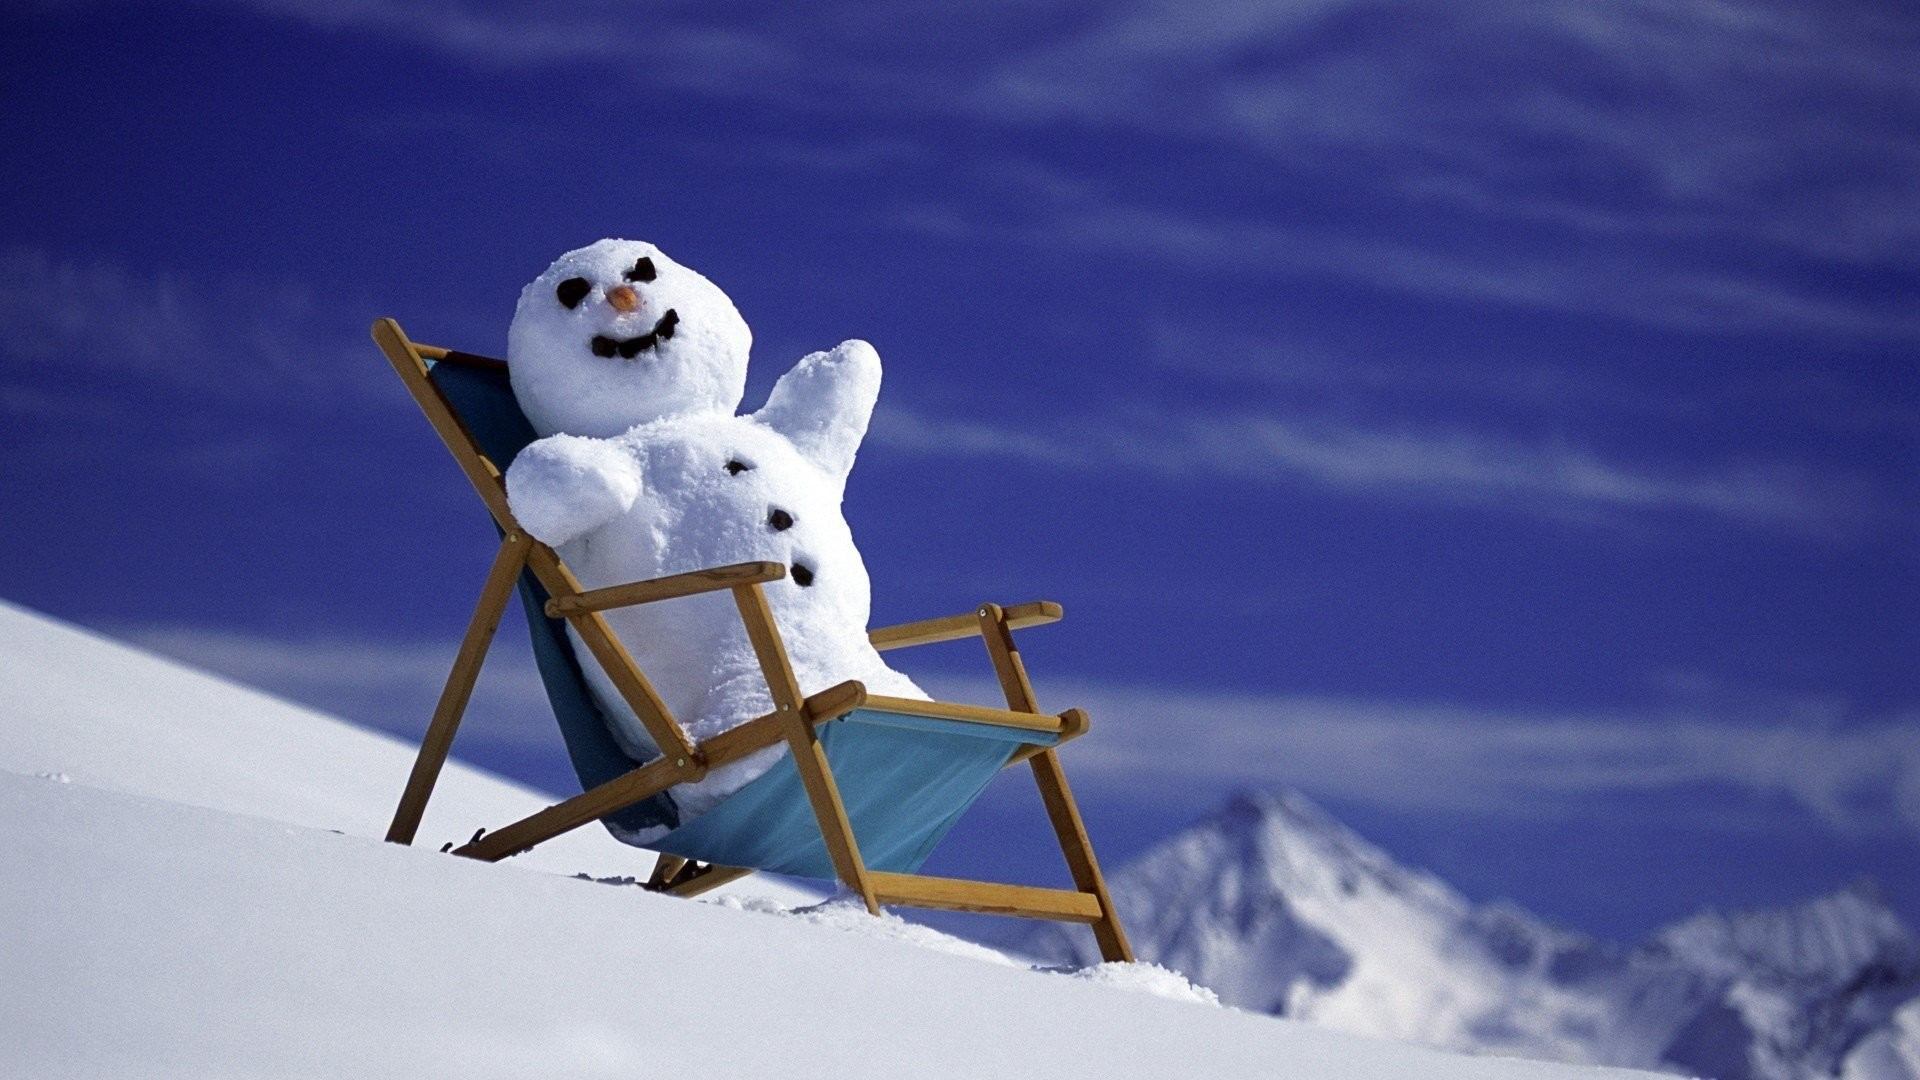 download funny winter wallpaper which is under the winter wallpapers .